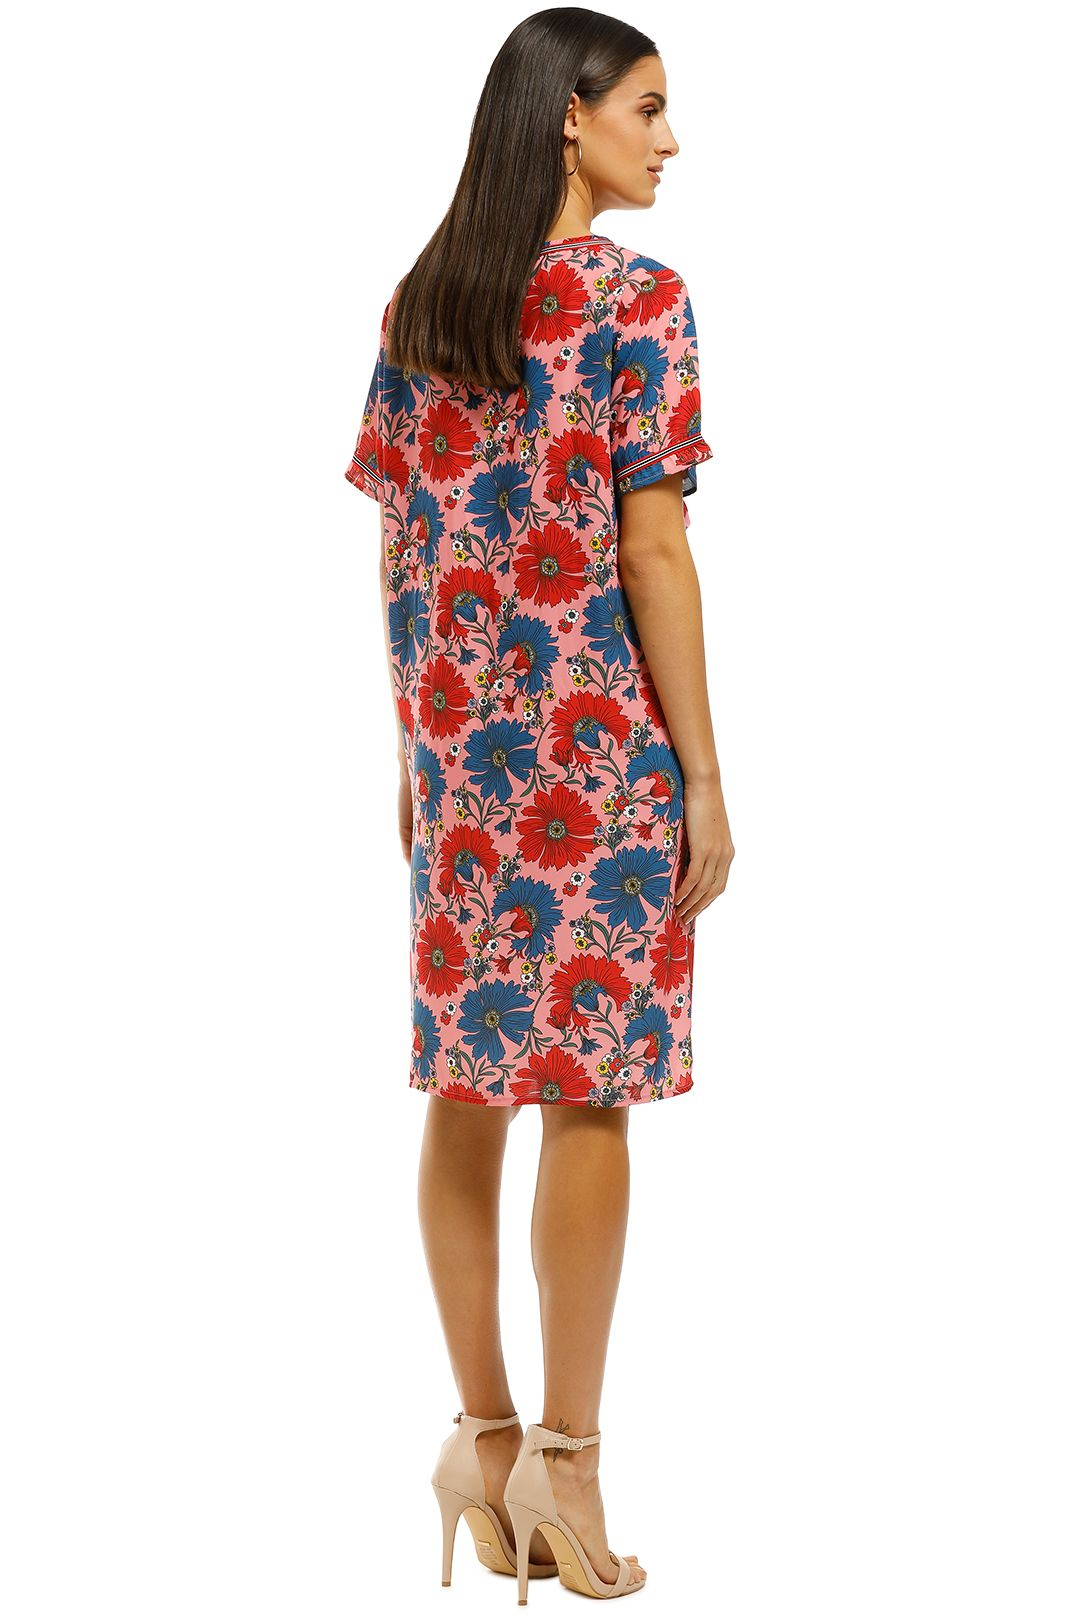 Curate-by-Trelise-Cooper-In-A-Ruffle-Dress-Multi-Back